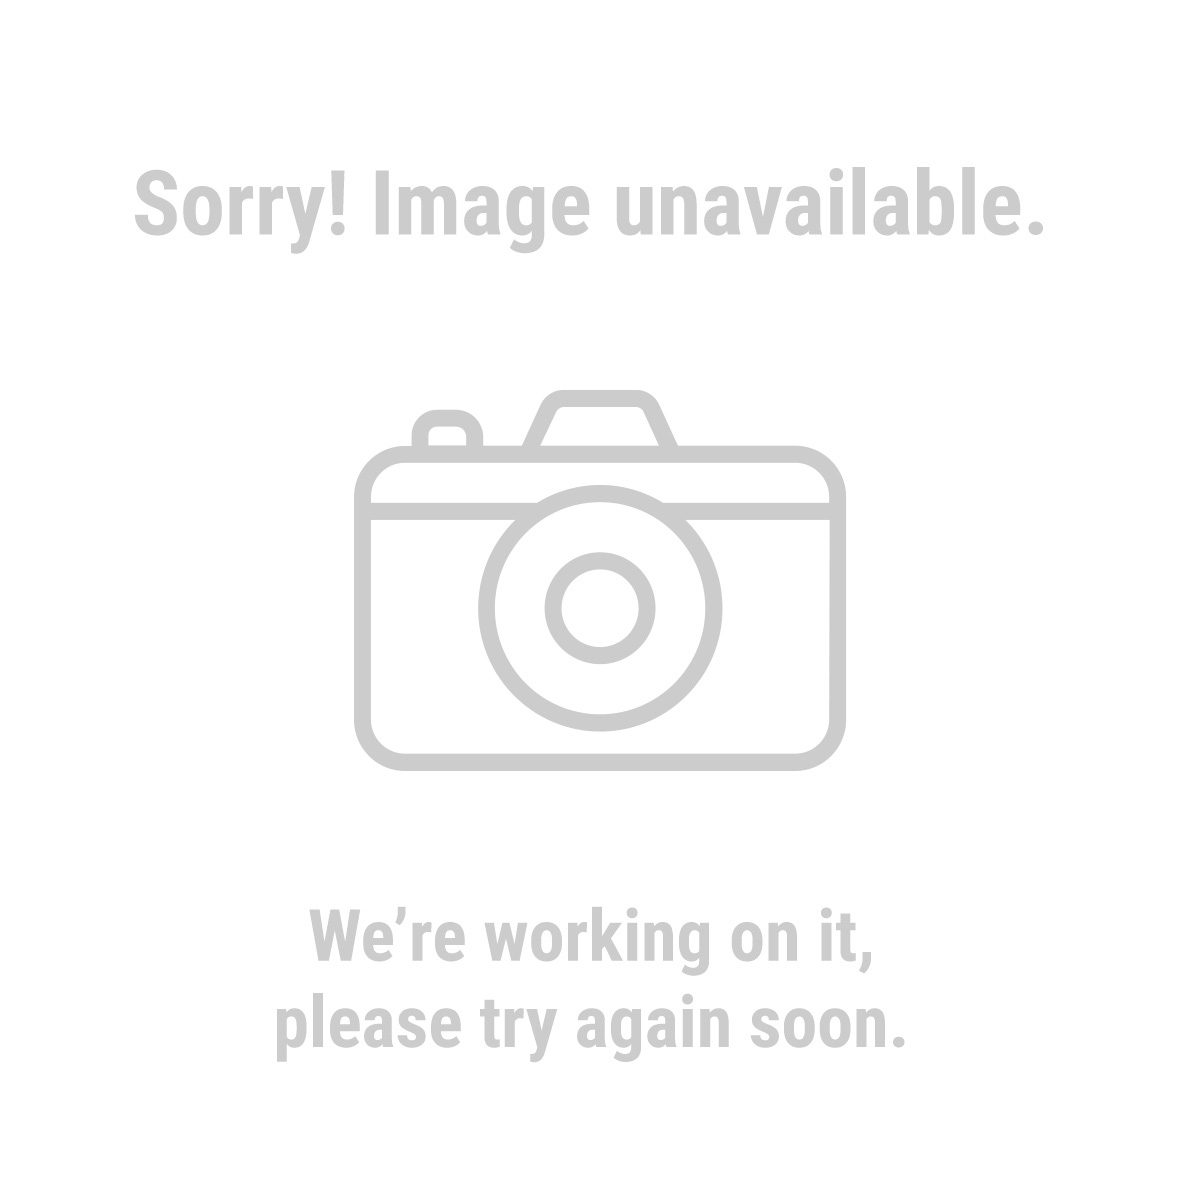 Central Forge 468 12 Piece Needle File Set